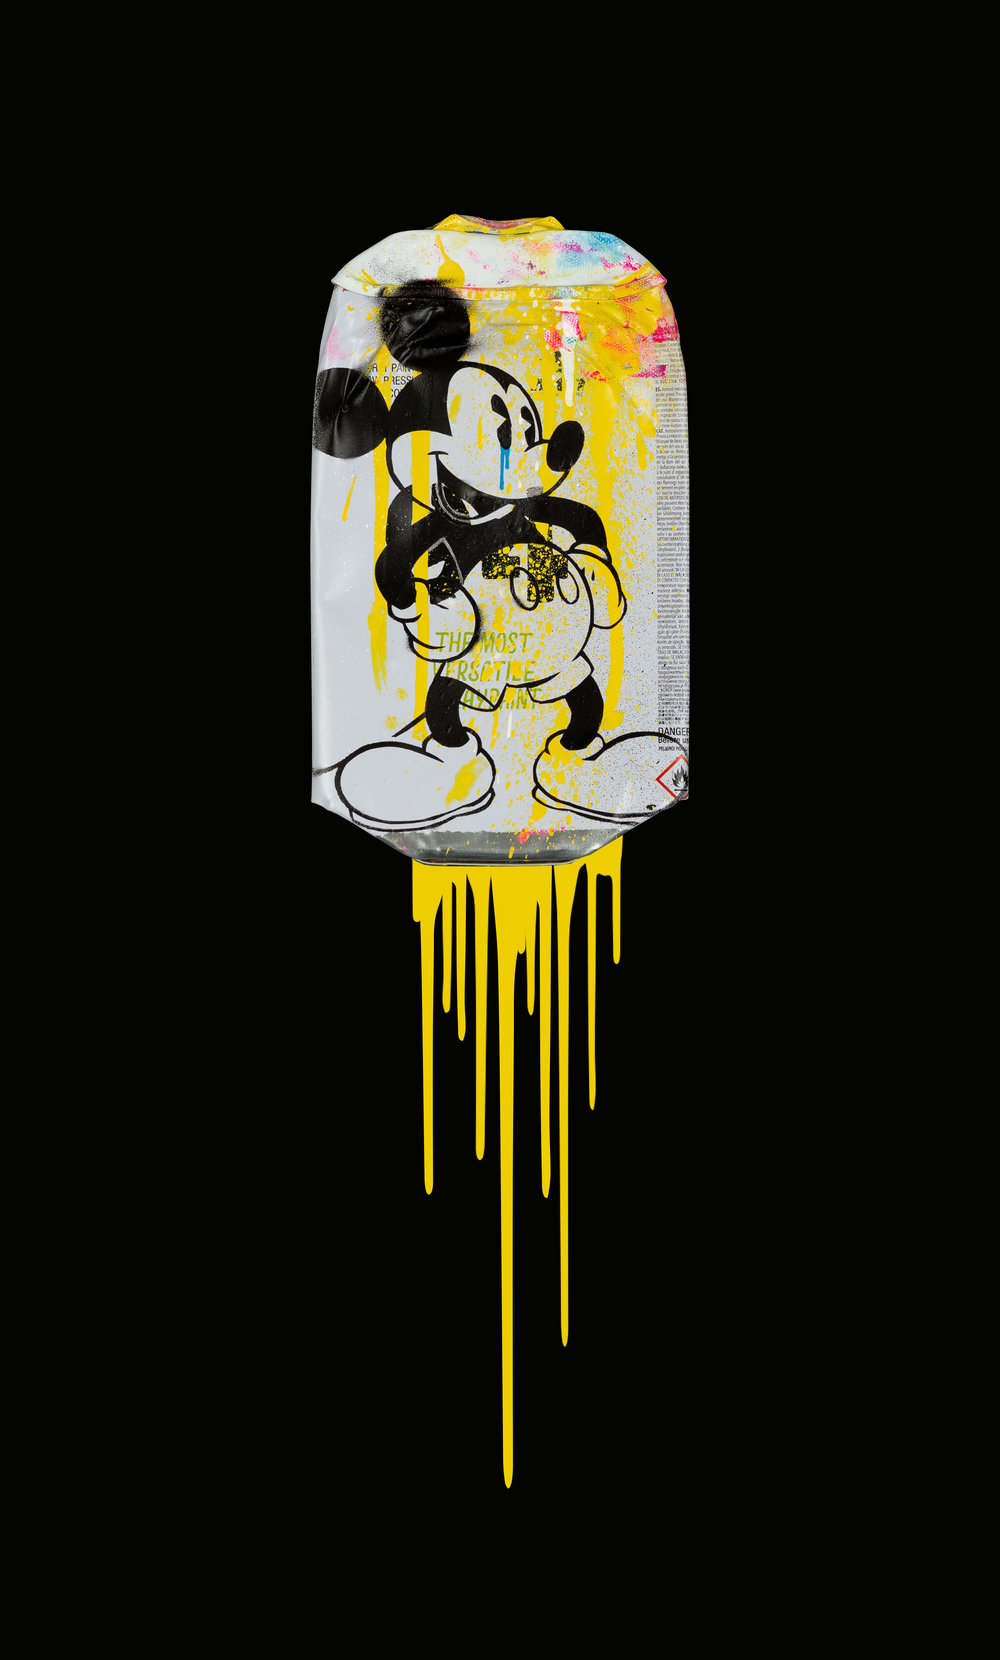 Mickey-Montana-94-Light-Yellow-Acrylic-Spray-paint-on-crushed-spray-can-in-museum-perspex-box-frame-27.5cm-x-45cm-x-5.5cm-£725.jpg